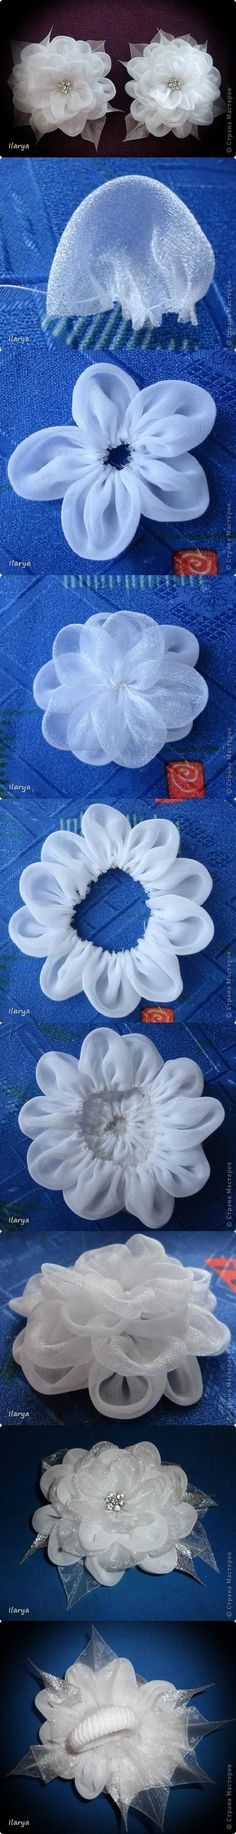 DIY Fabric Lust Flower | FabDiy Check out the website to see more: